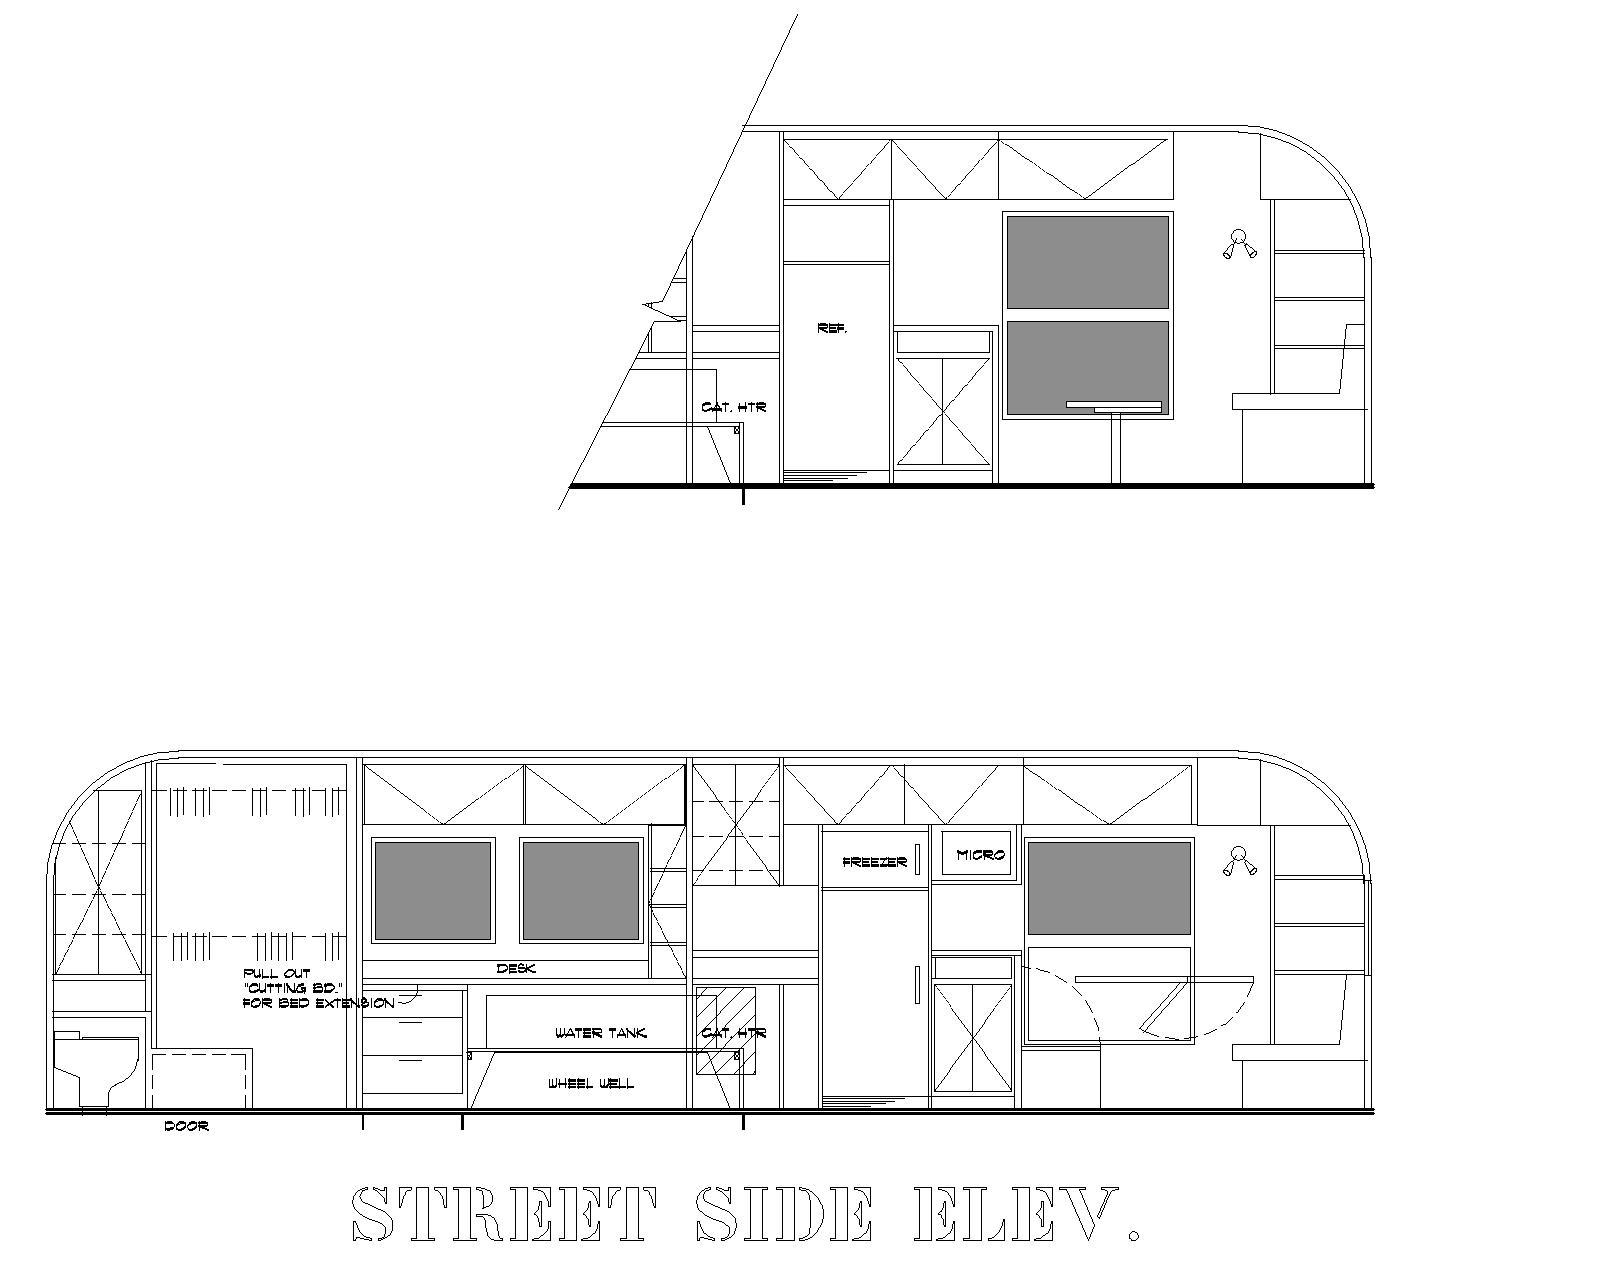 Click image for larger version  Name:Airstream-Street side.jpg Views:178 Size:147.7 KB ID:92803